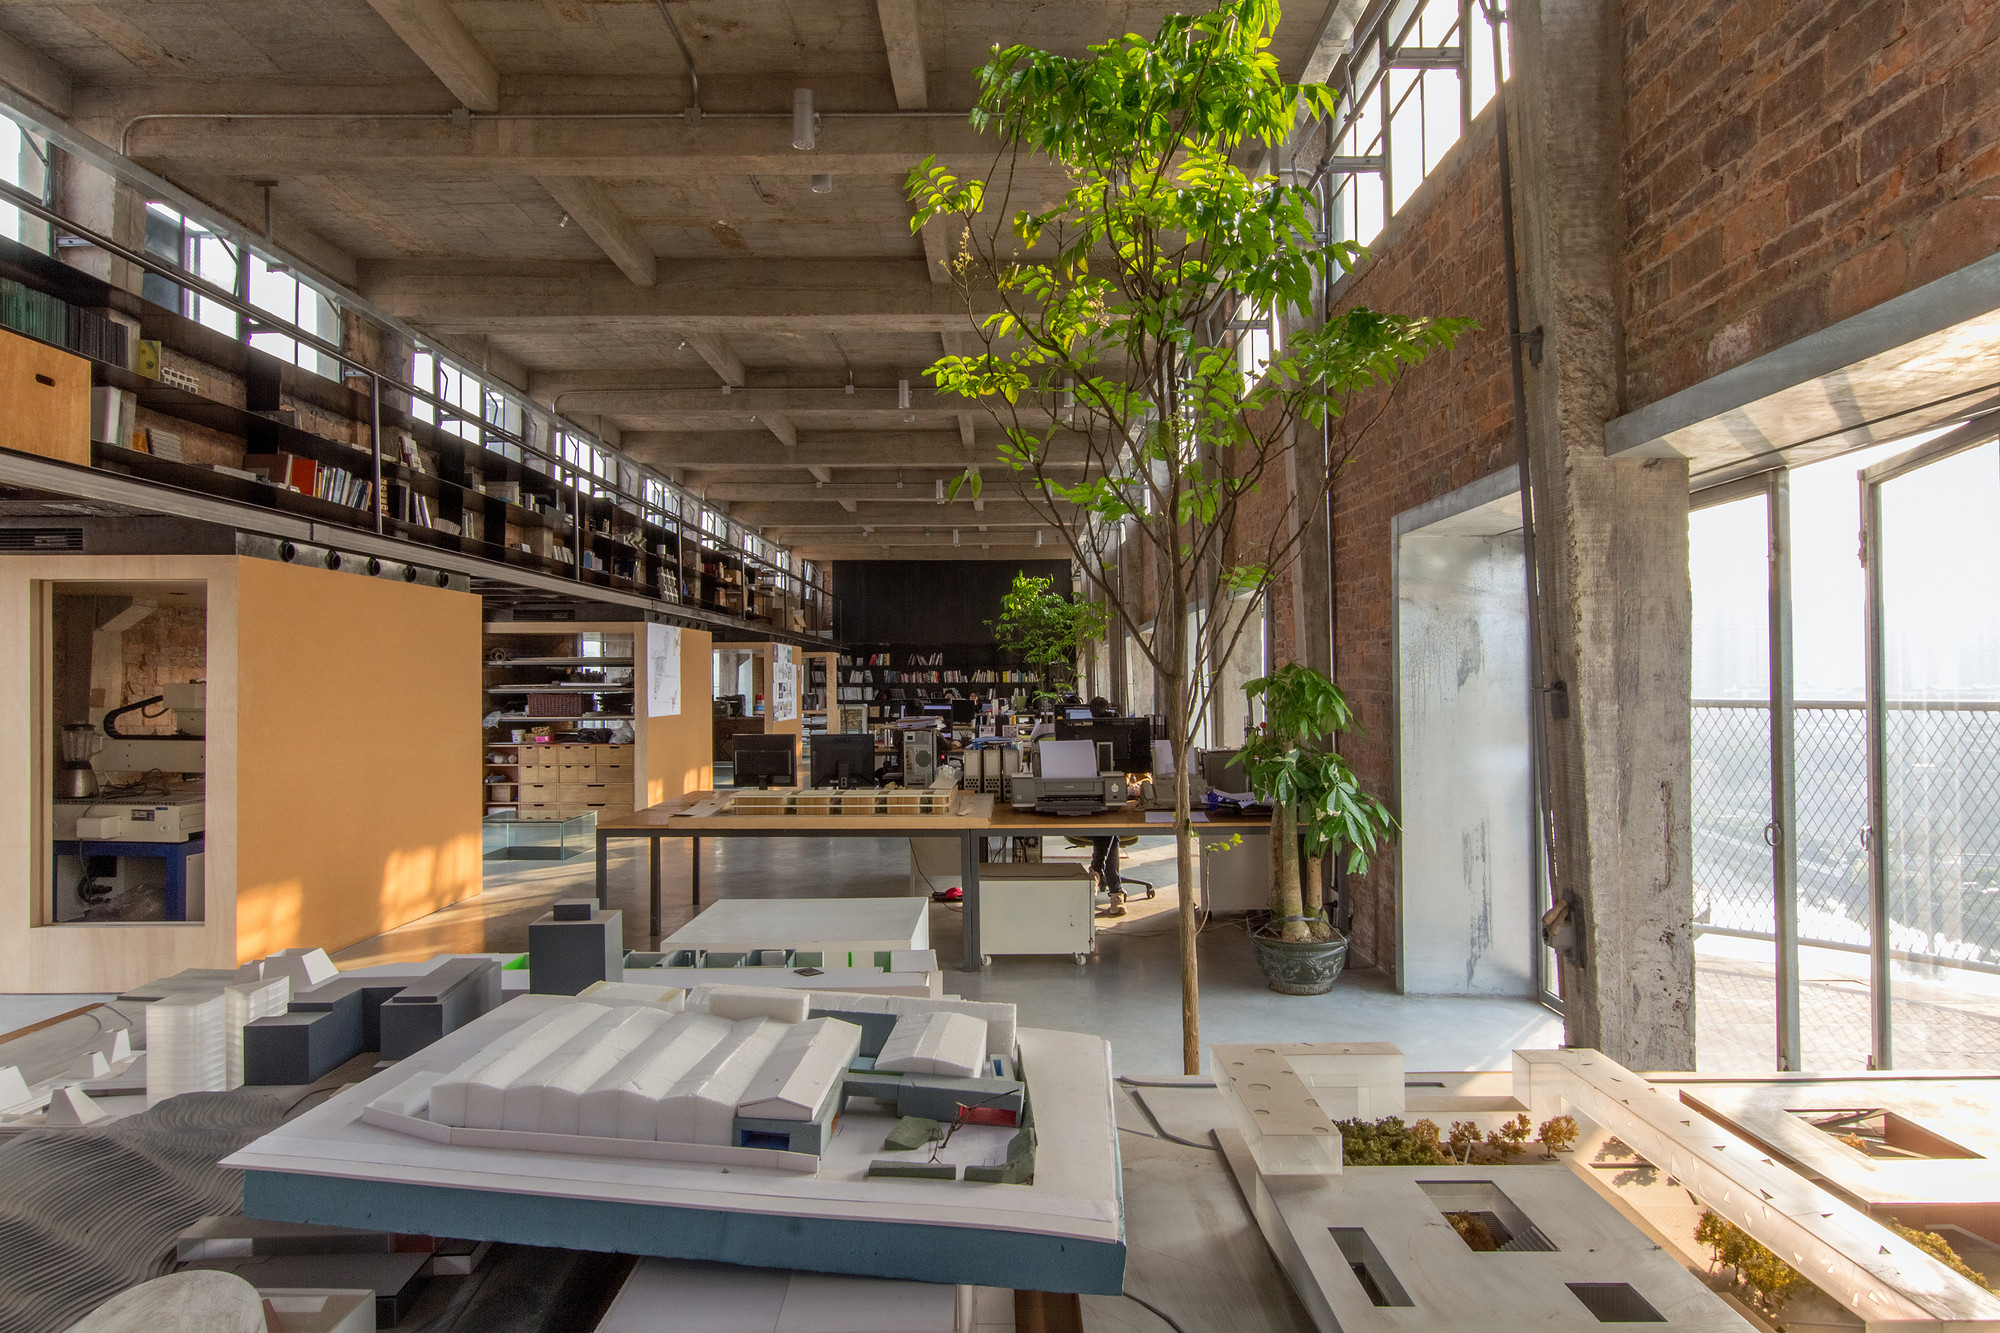 Gallery of silo top studio o office architects 4 for The space studio architects